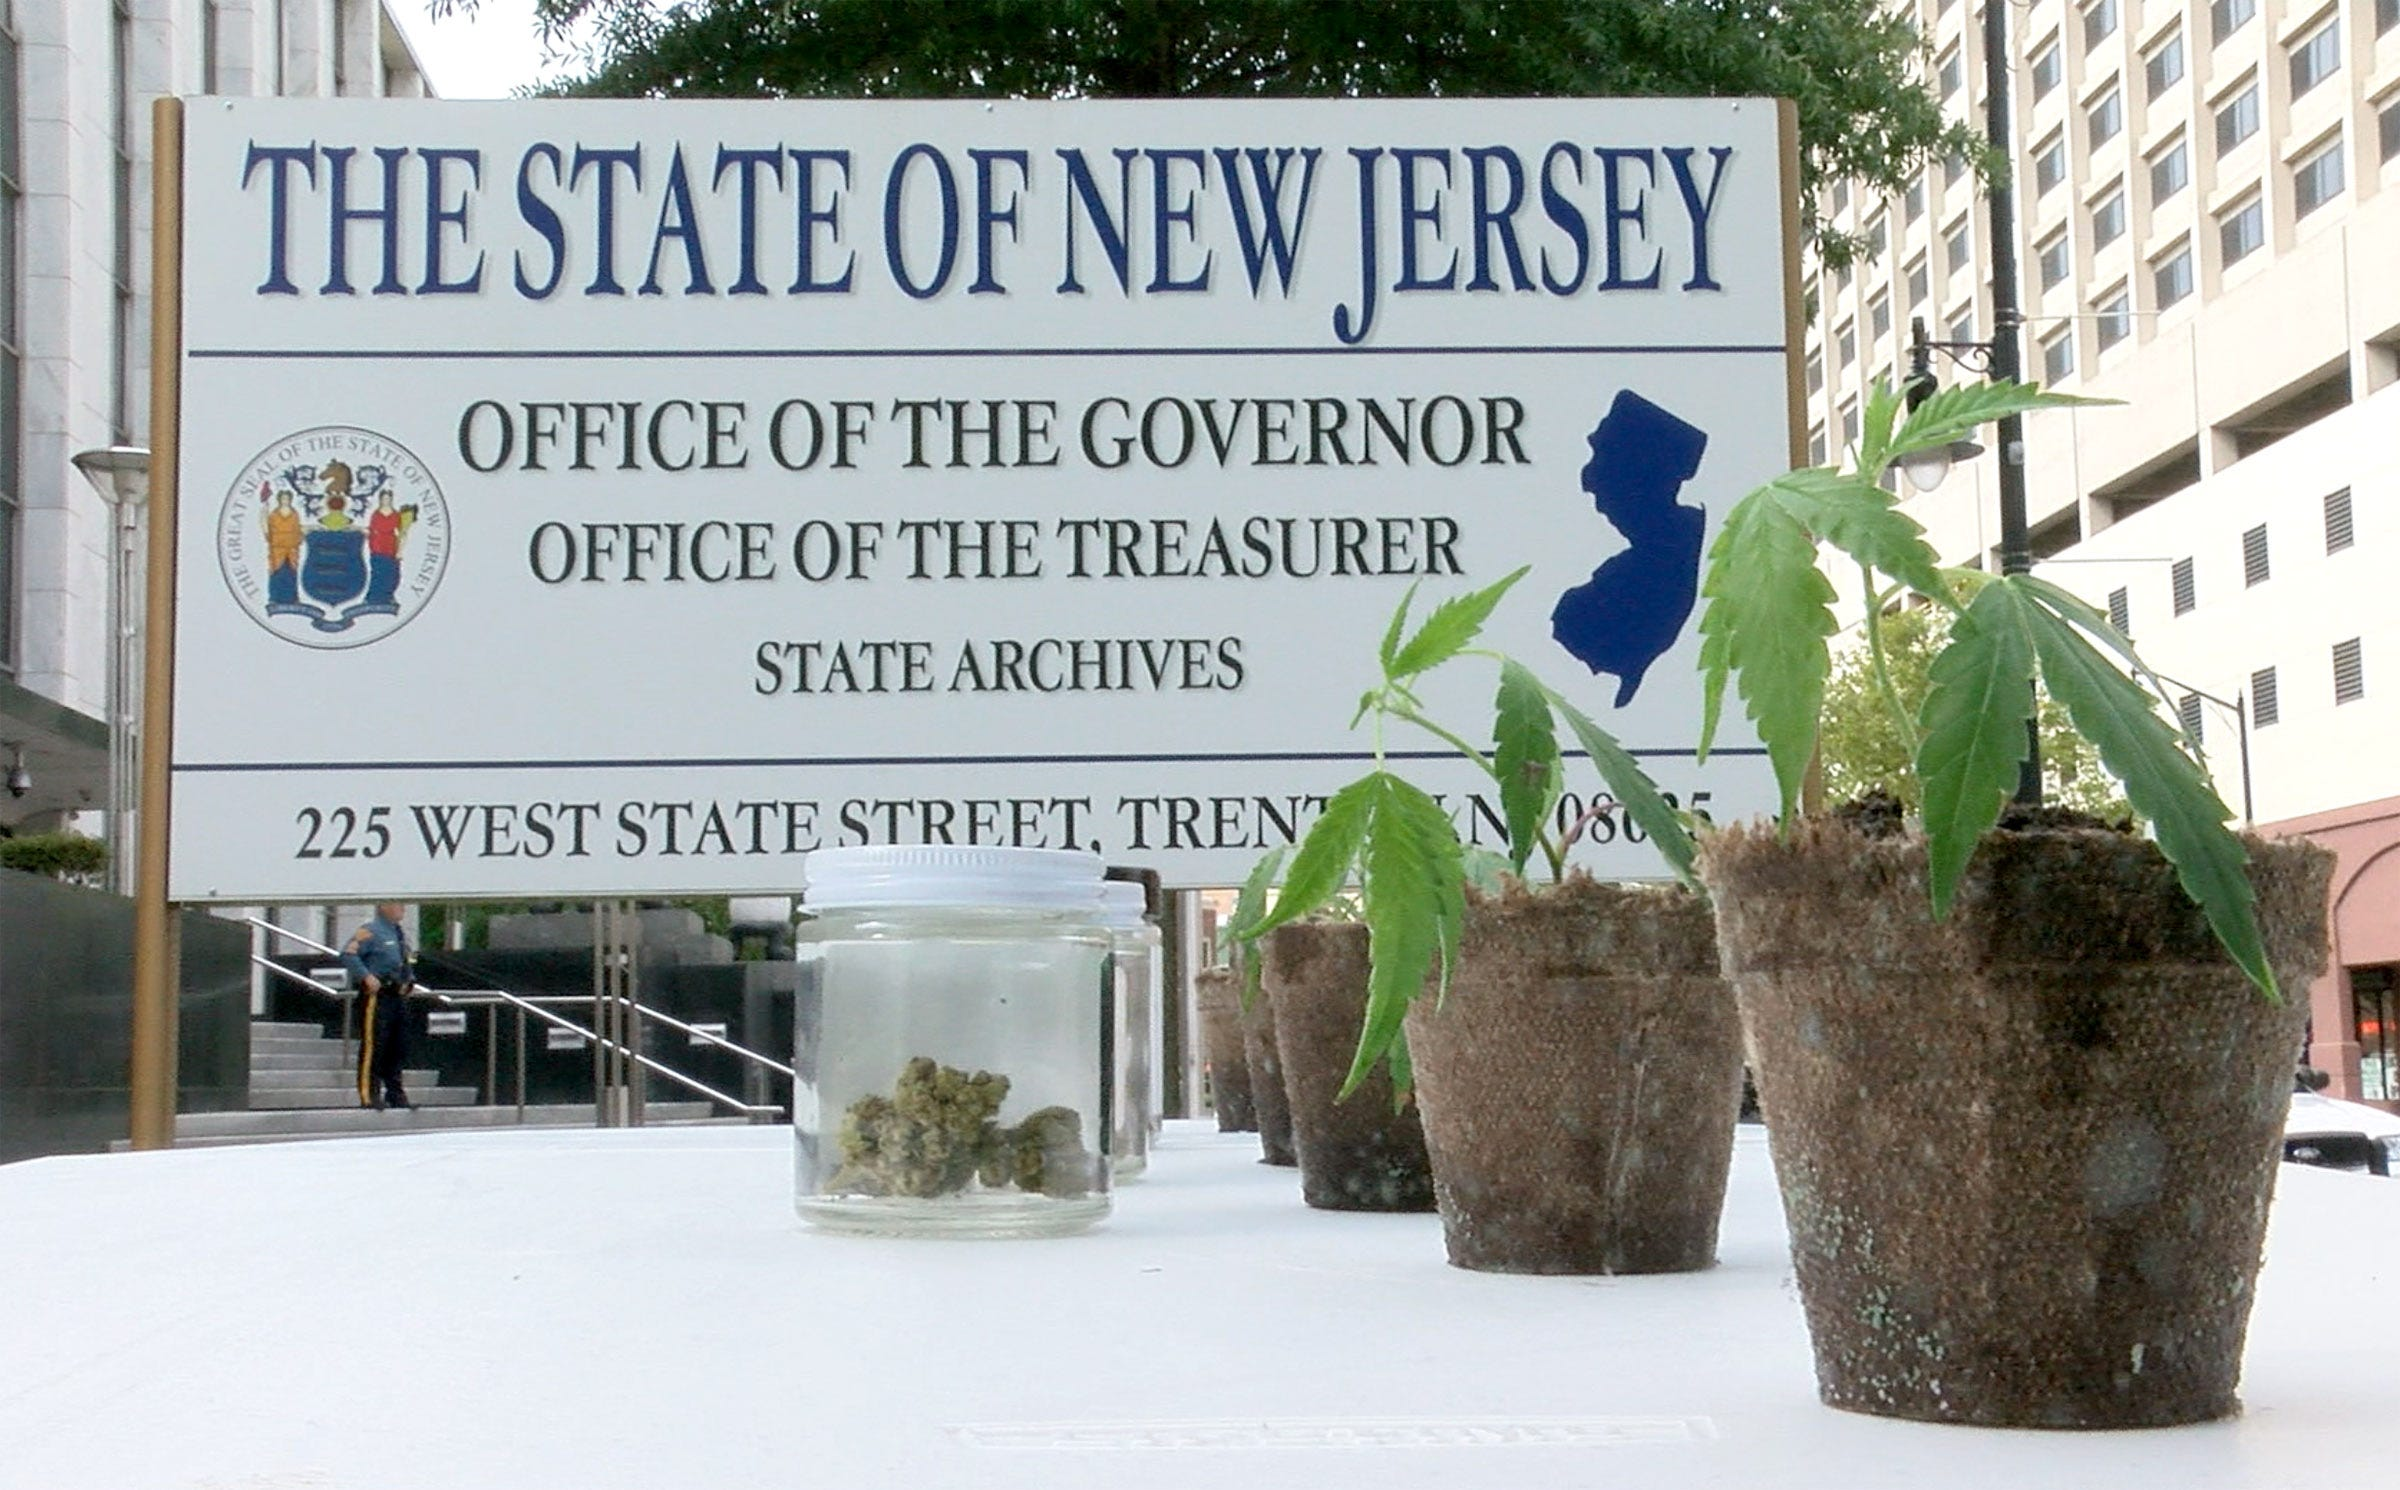 A new beginning : New Jersey becomes 13th state to legalize recreational marijuana, dismissing  broken, indefensible  laws